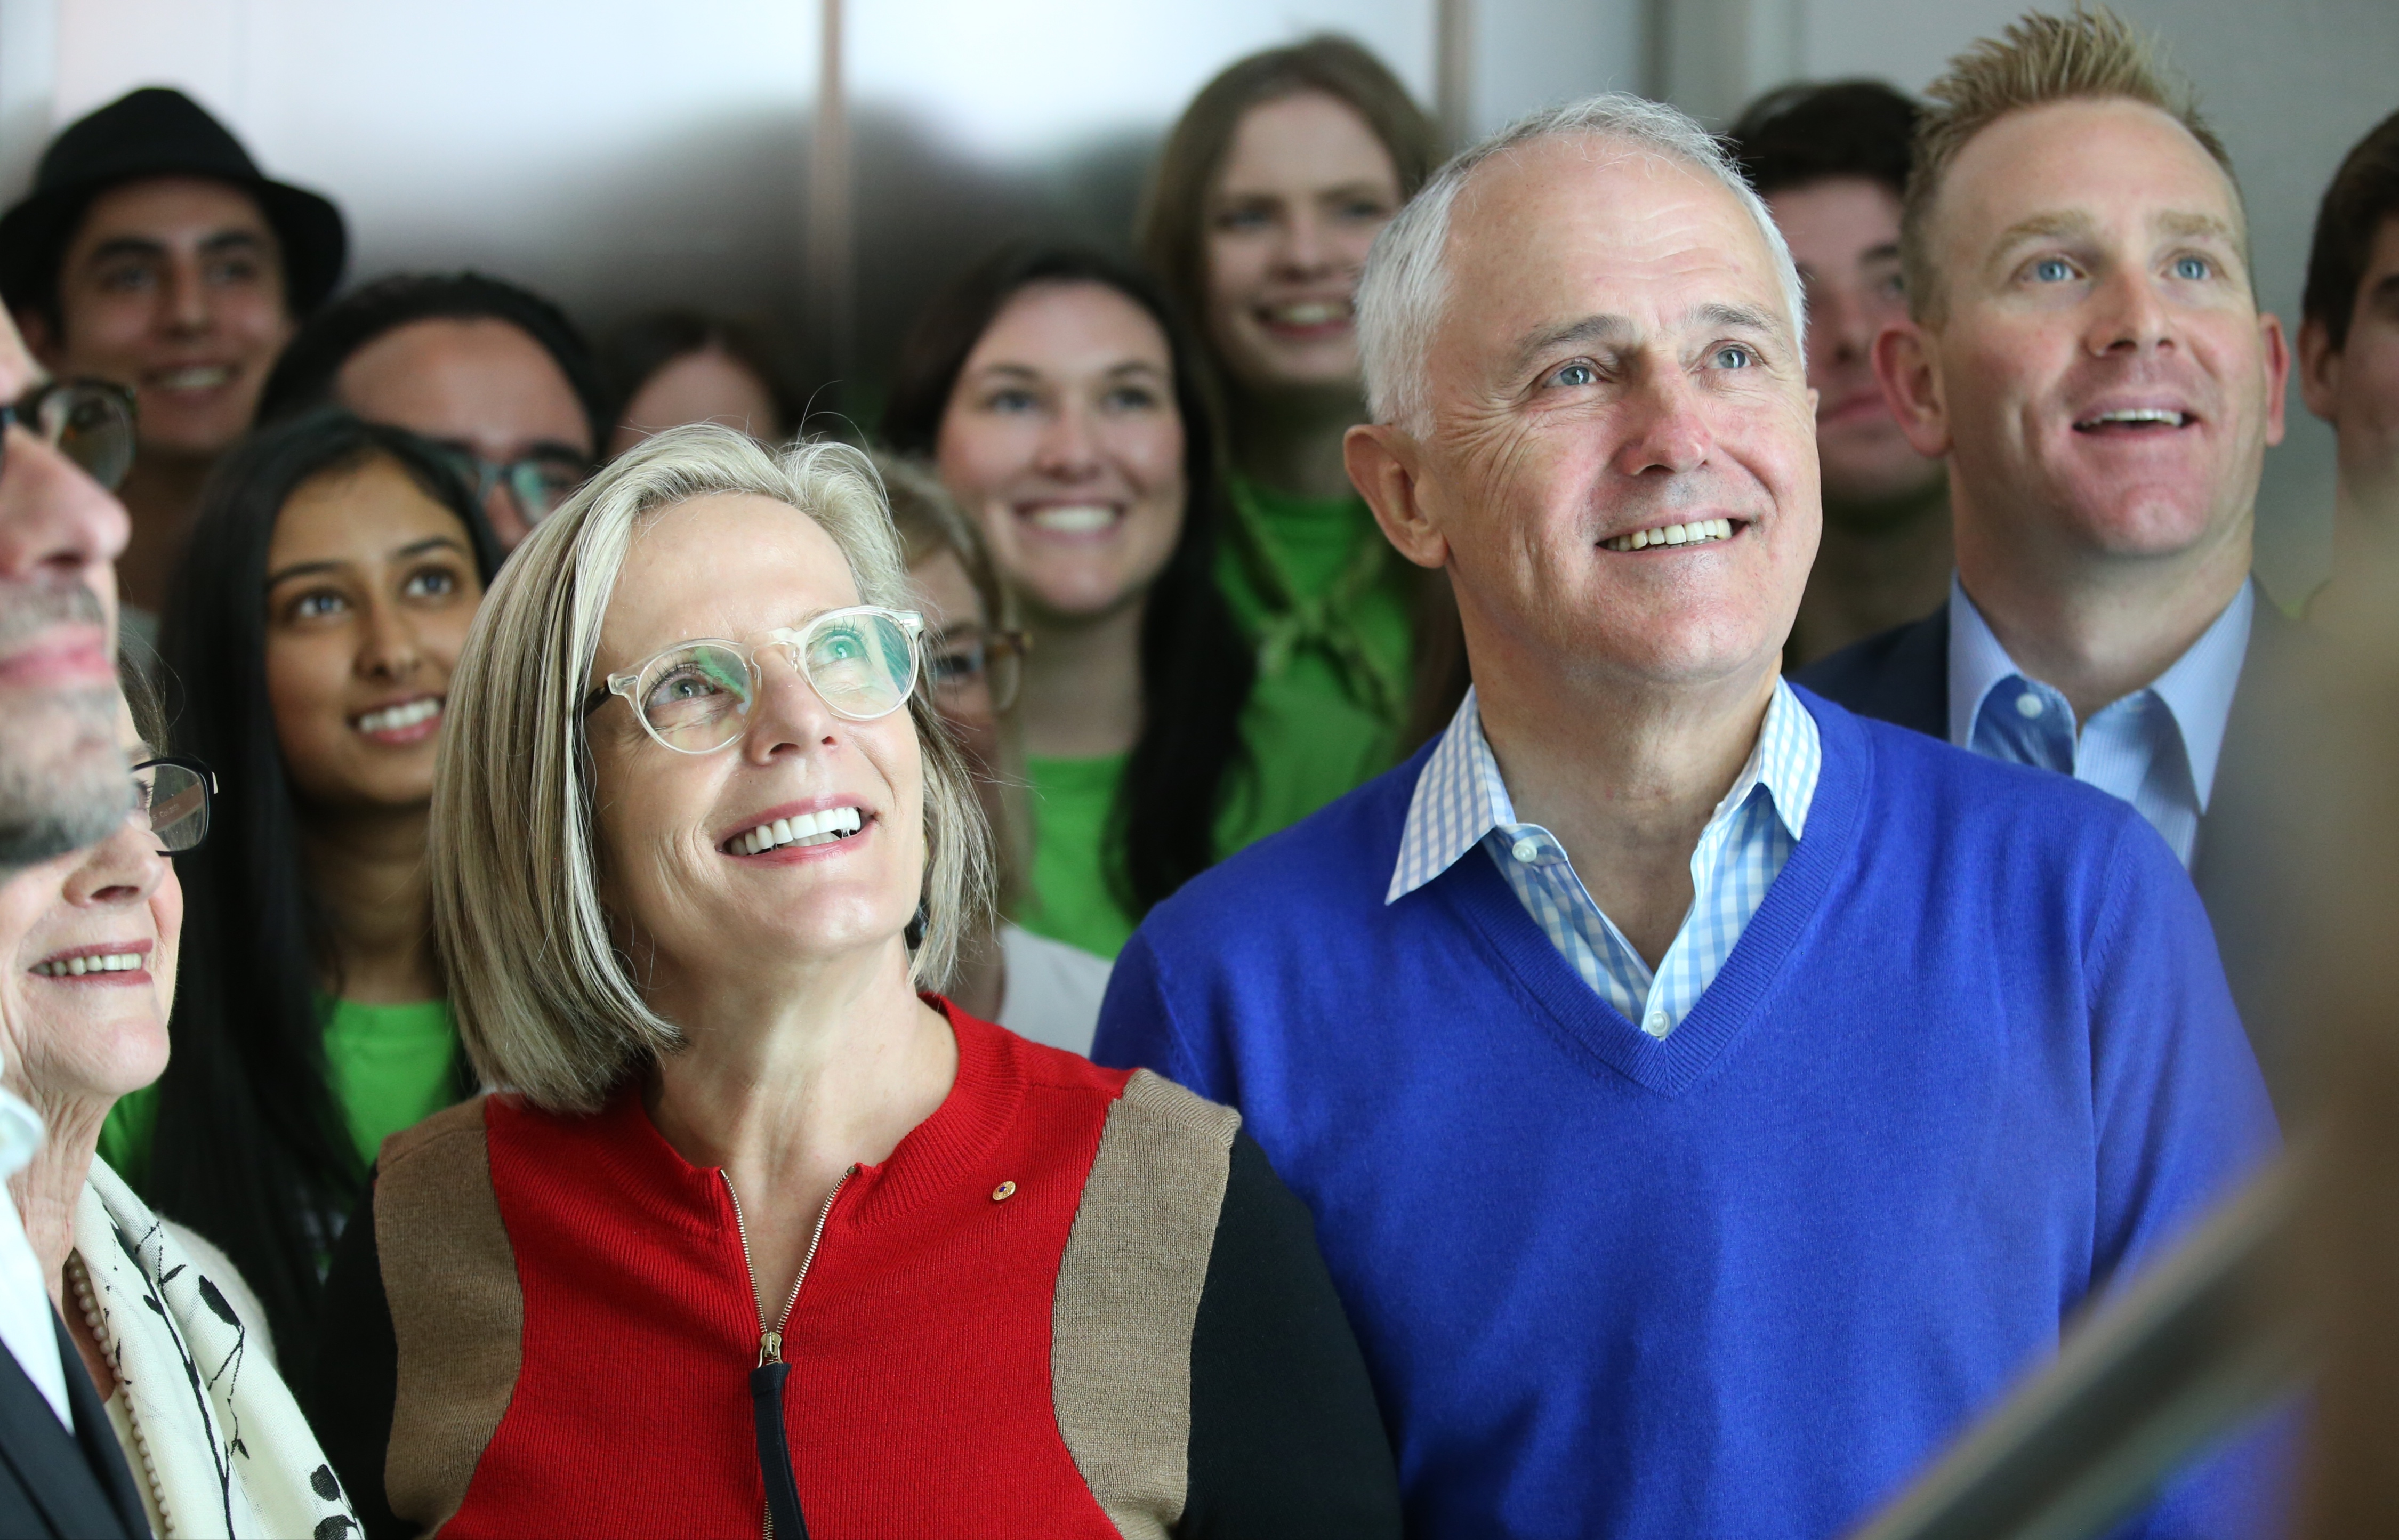 Lucy and Malcolm Turnbull at the opening of mental health facility Headspace in Bondi